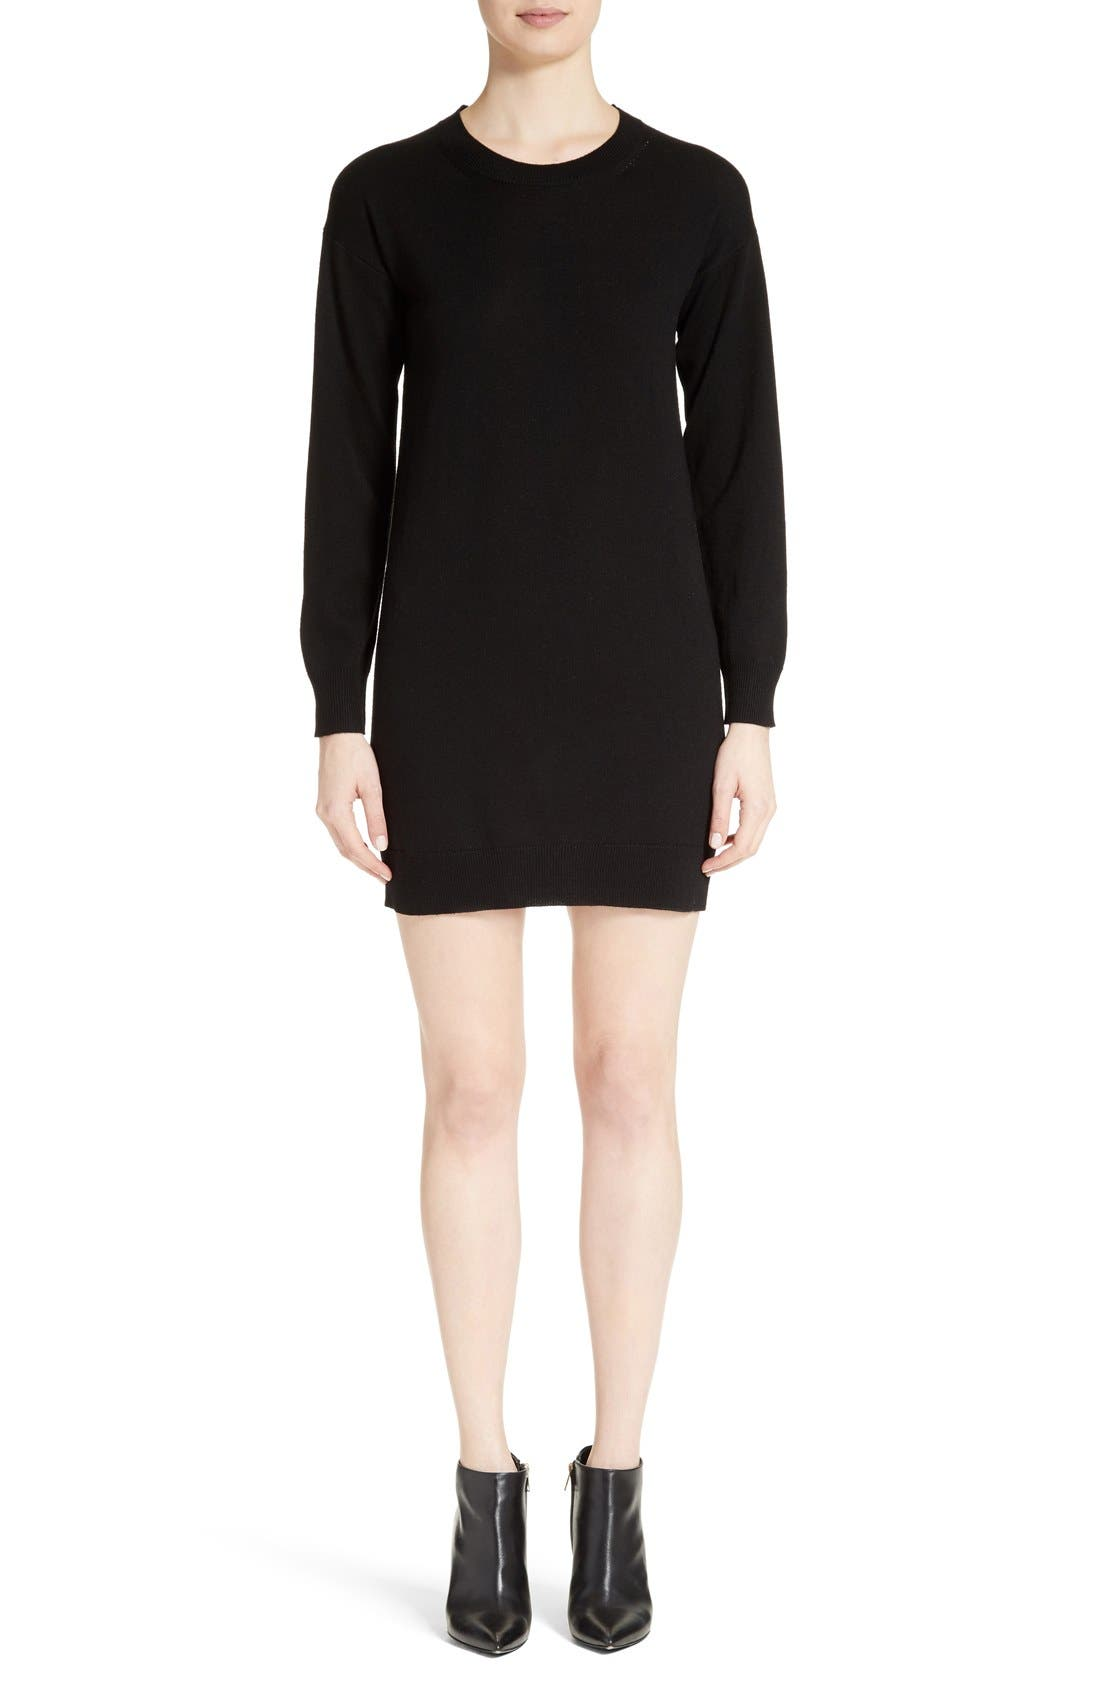 Alternate Image 1 Selected - Burberry Alewater Elbow Patch Merino Wool Dress